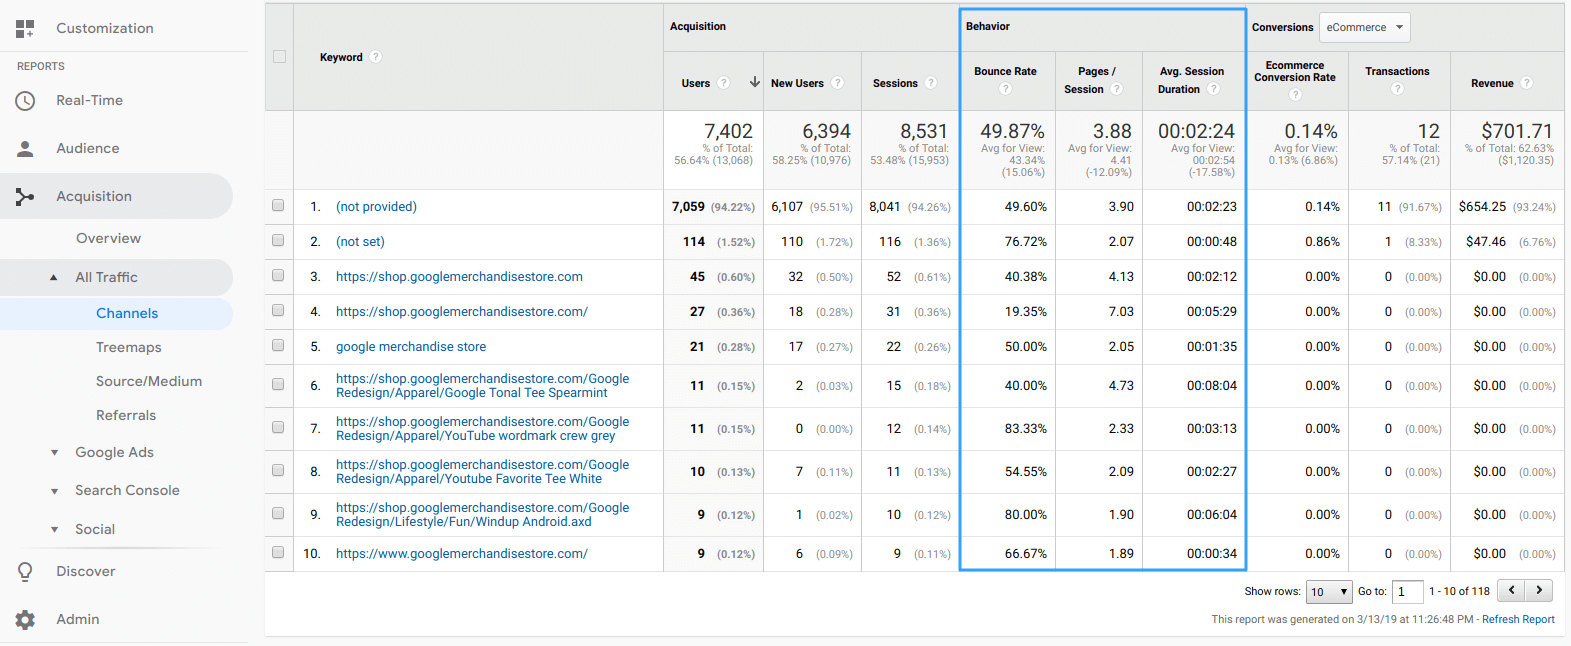 Behavior column in Google Analytics report